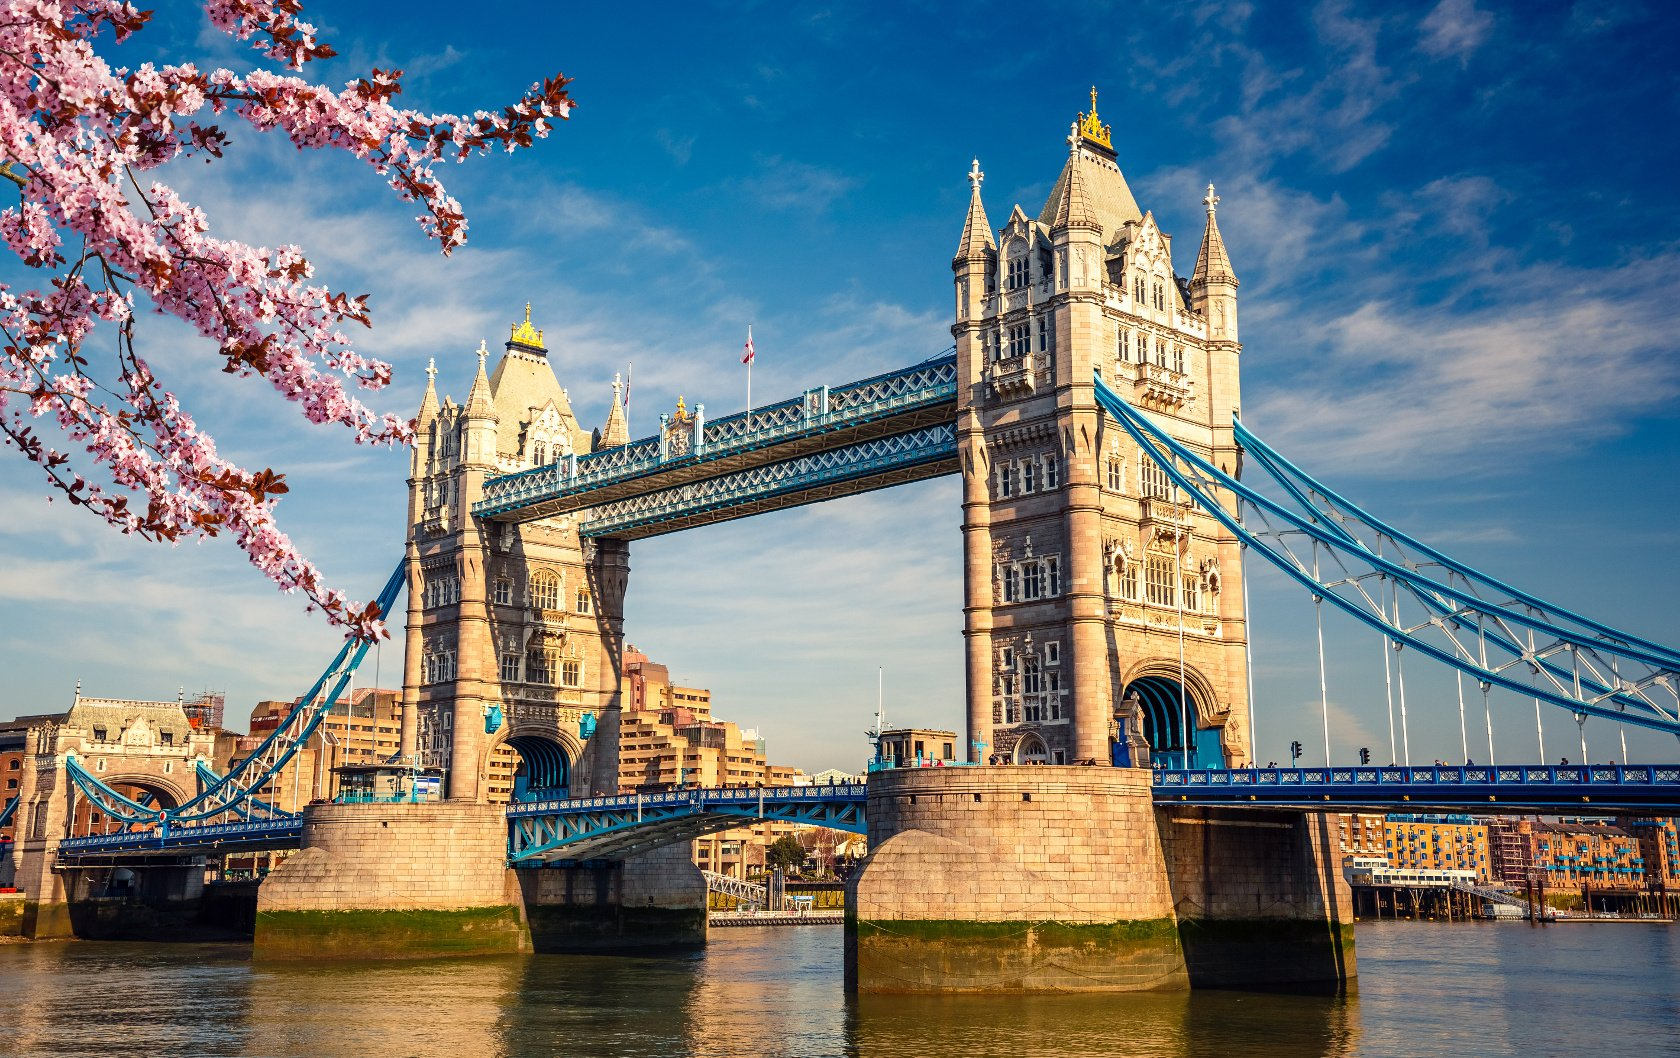 London travel guide for first-time visitors - Best Places to Visit in Europe - planningforeurope.com (2)